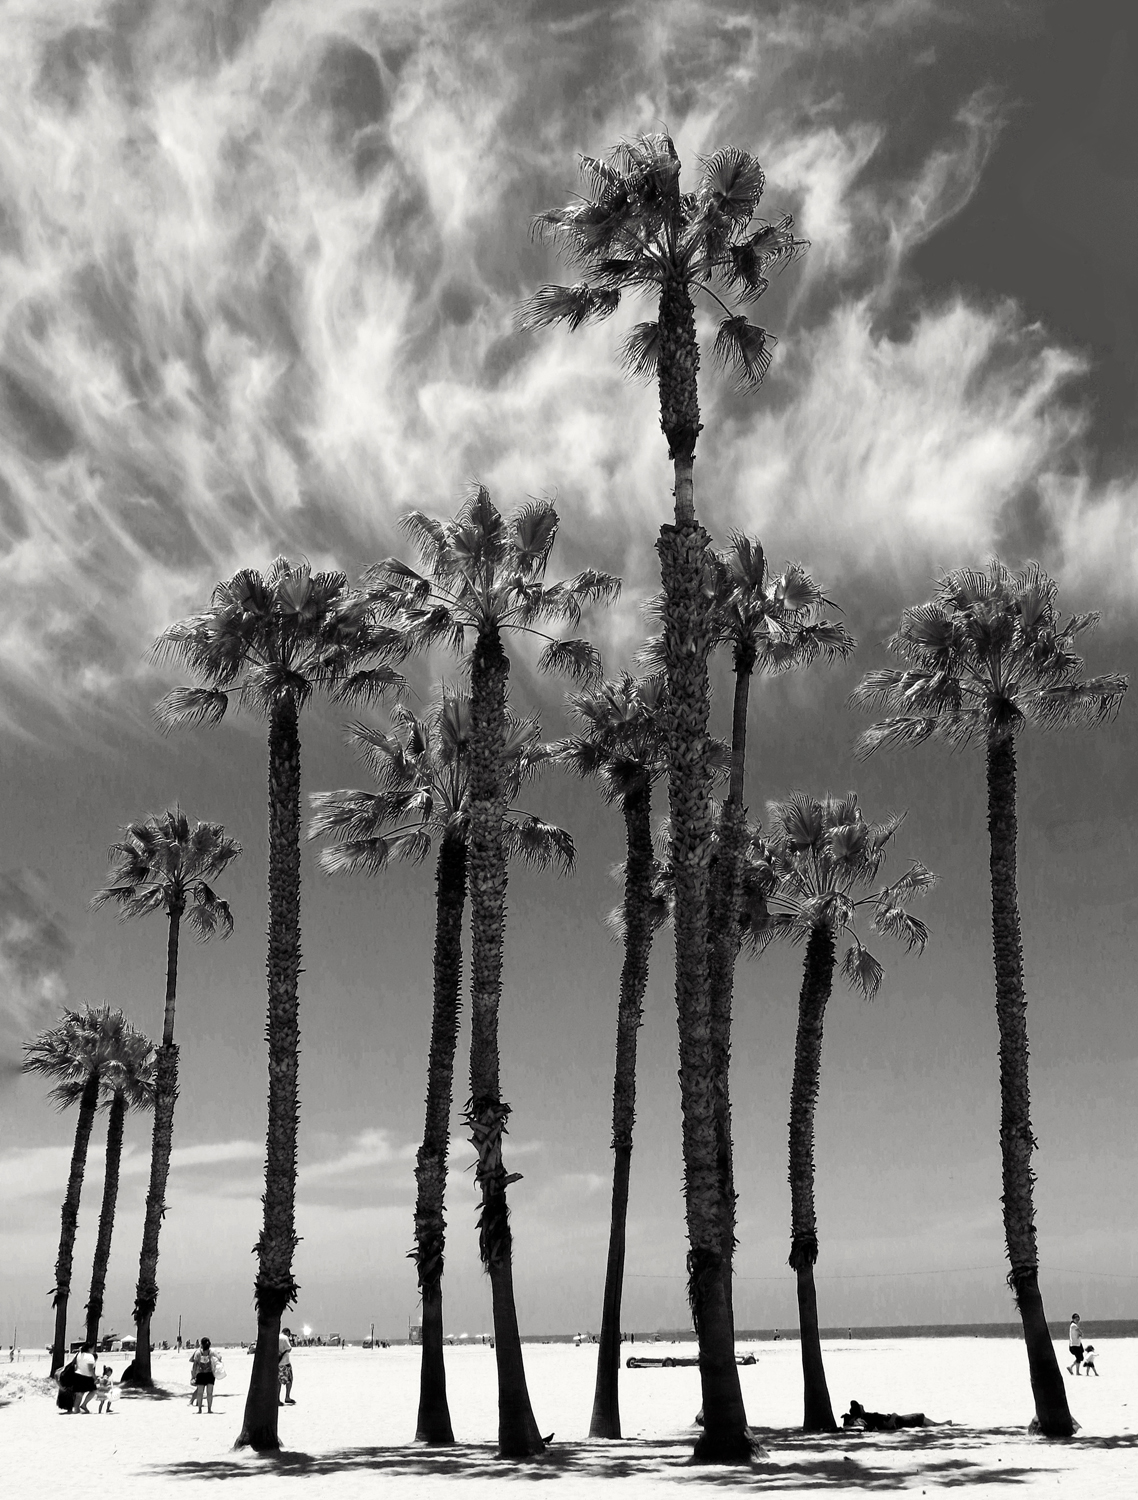 Smoking-palms-by-Robin-Pearson